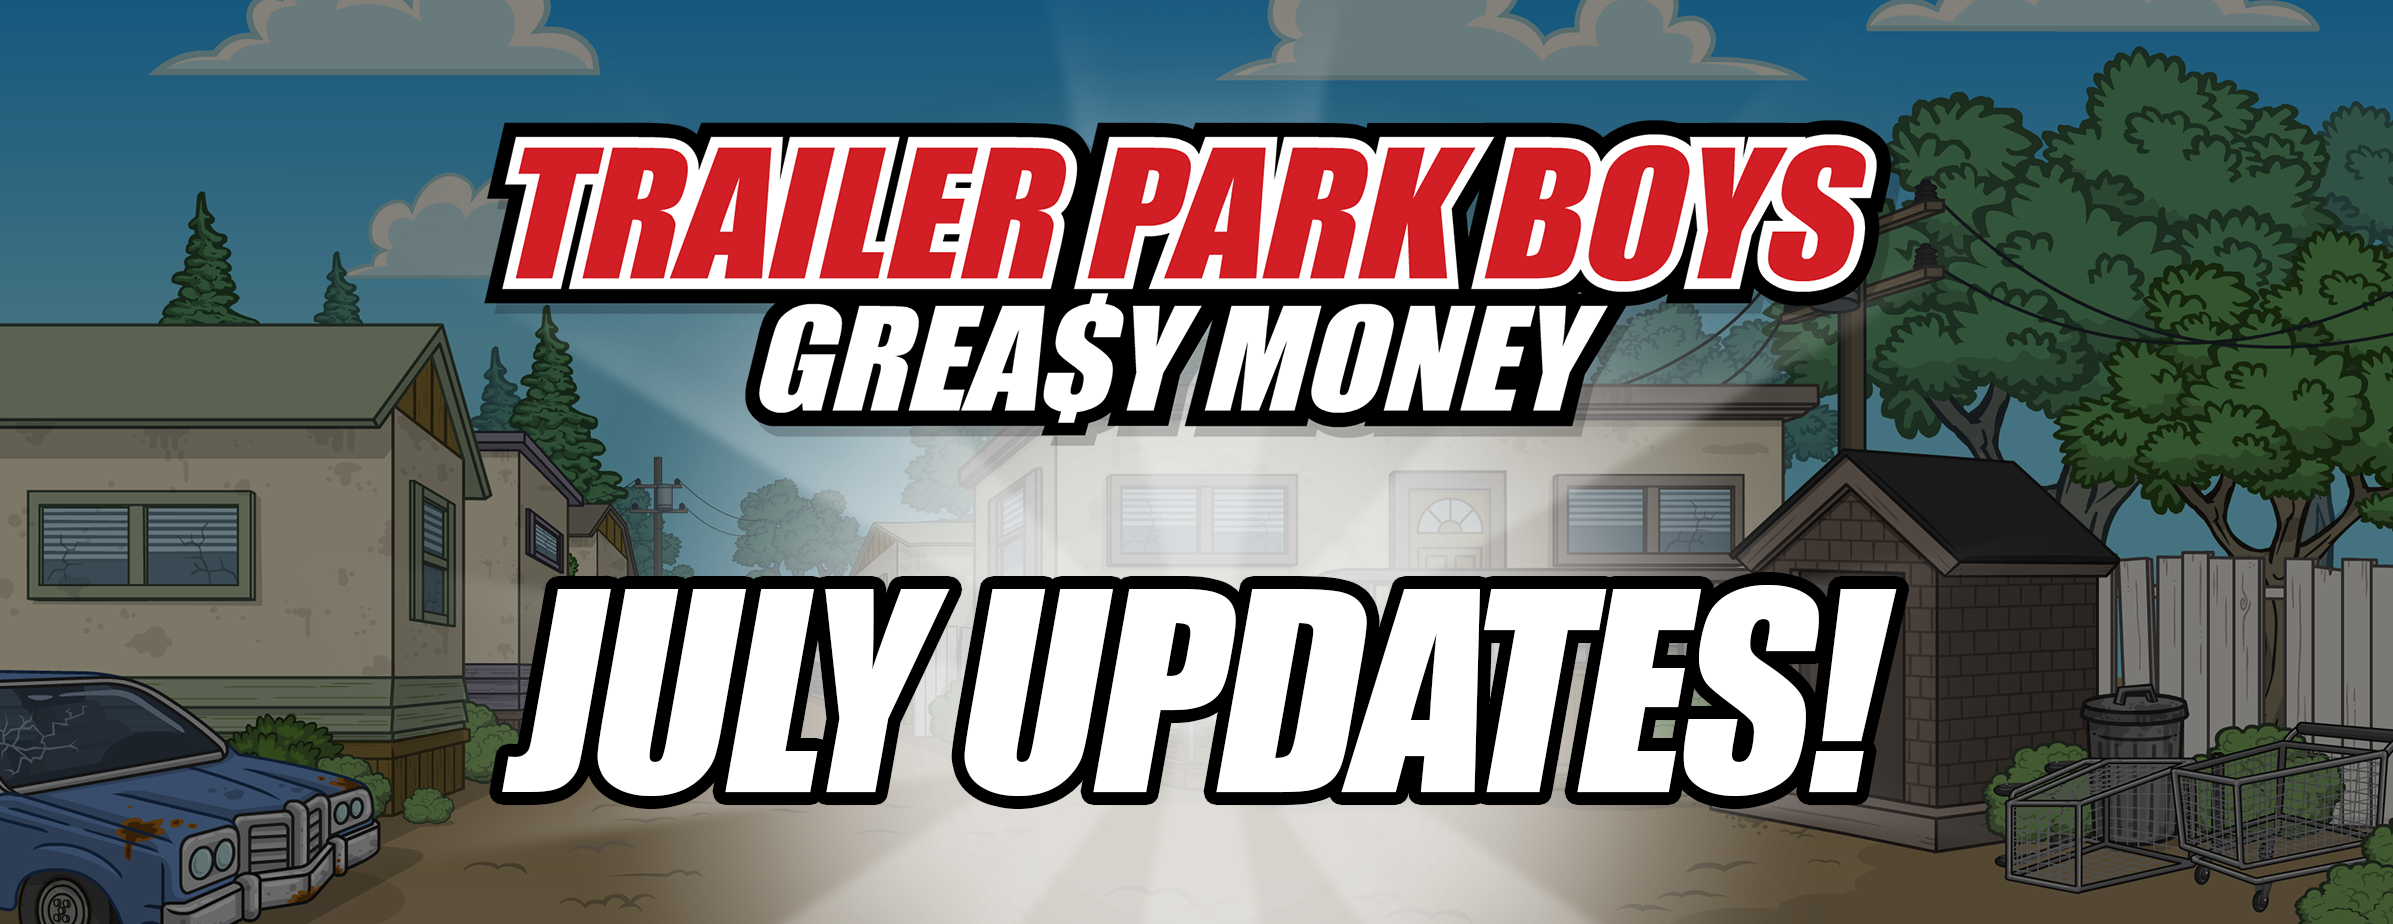 Trailer Park Boys: Greasy July Events!